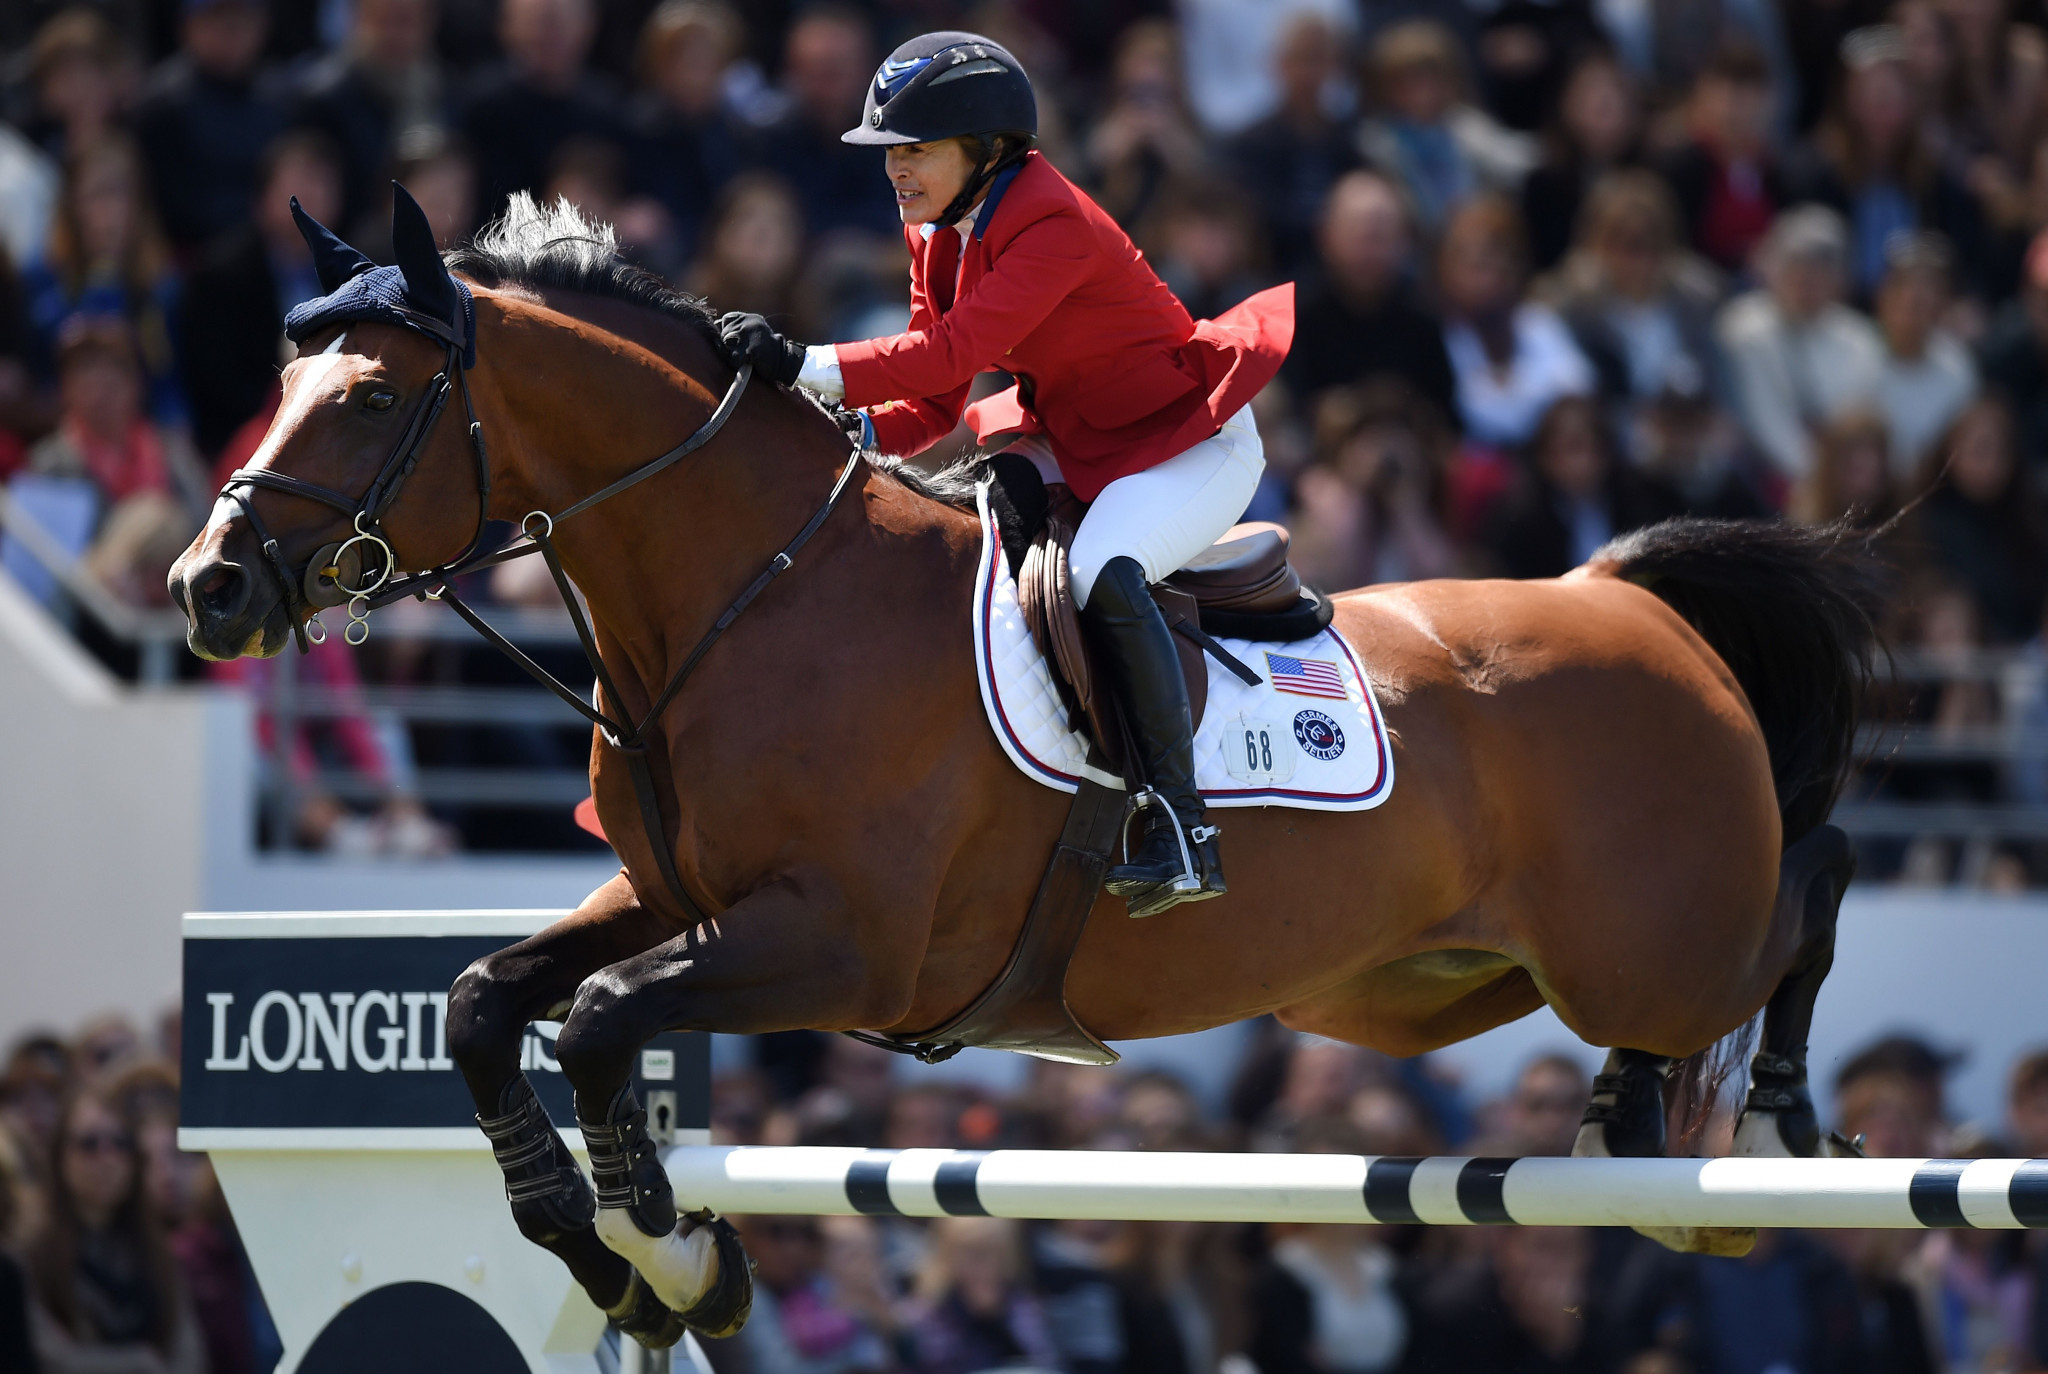 FEI Jumping Nations Cup 2019 series to begin with first event in Wellington